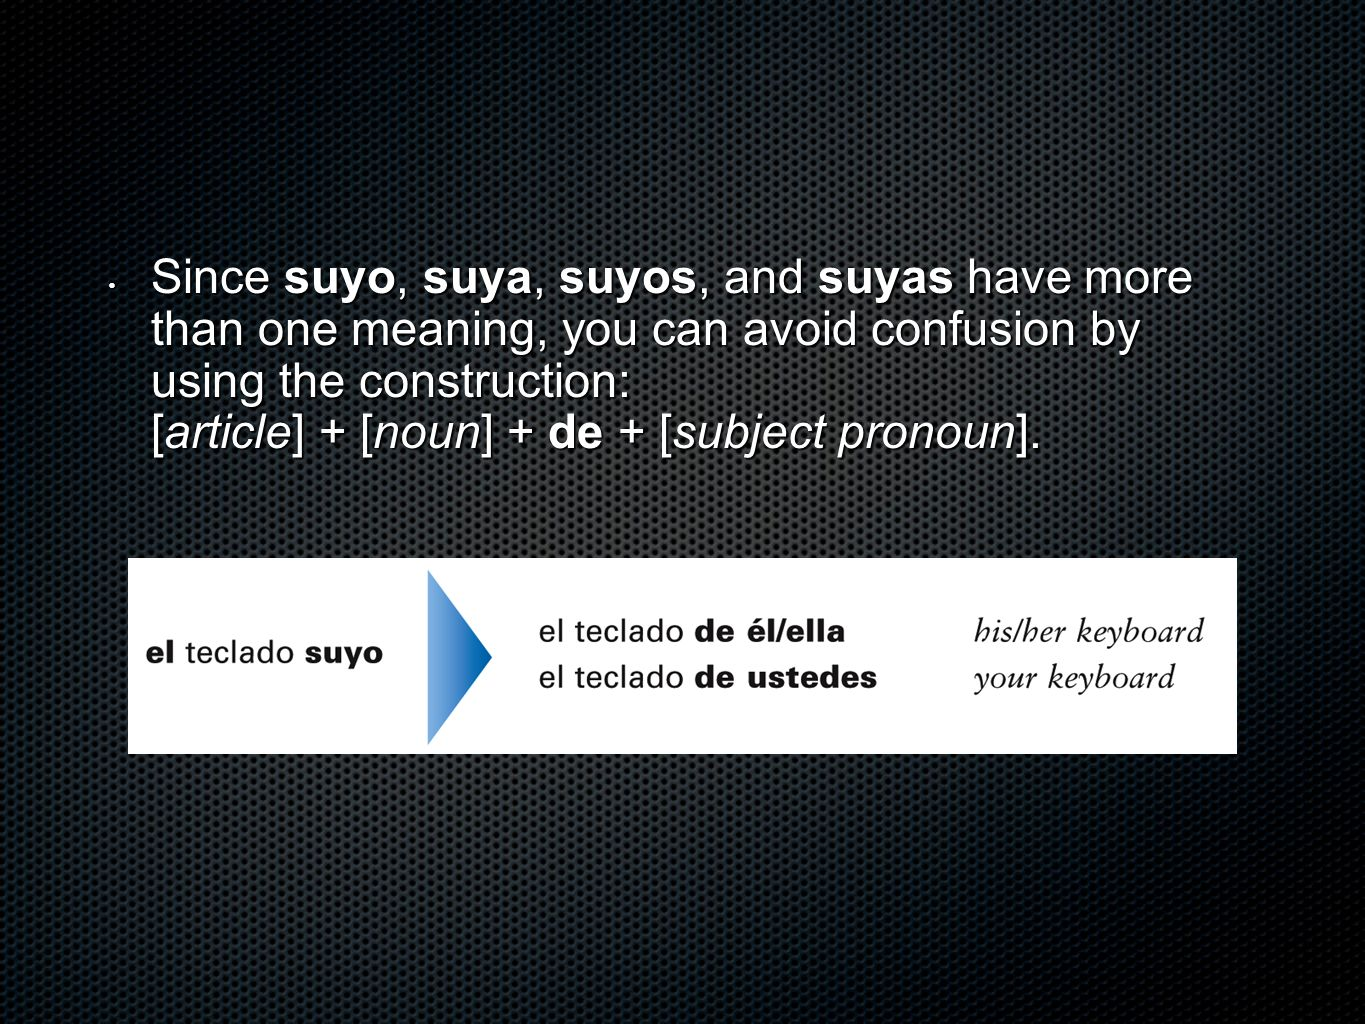 Since suyo, suya, suyos, and suyas have more than one meaning, you can avoid confusion by using the construction: [article] + [noun] + de + [subject pronoun].